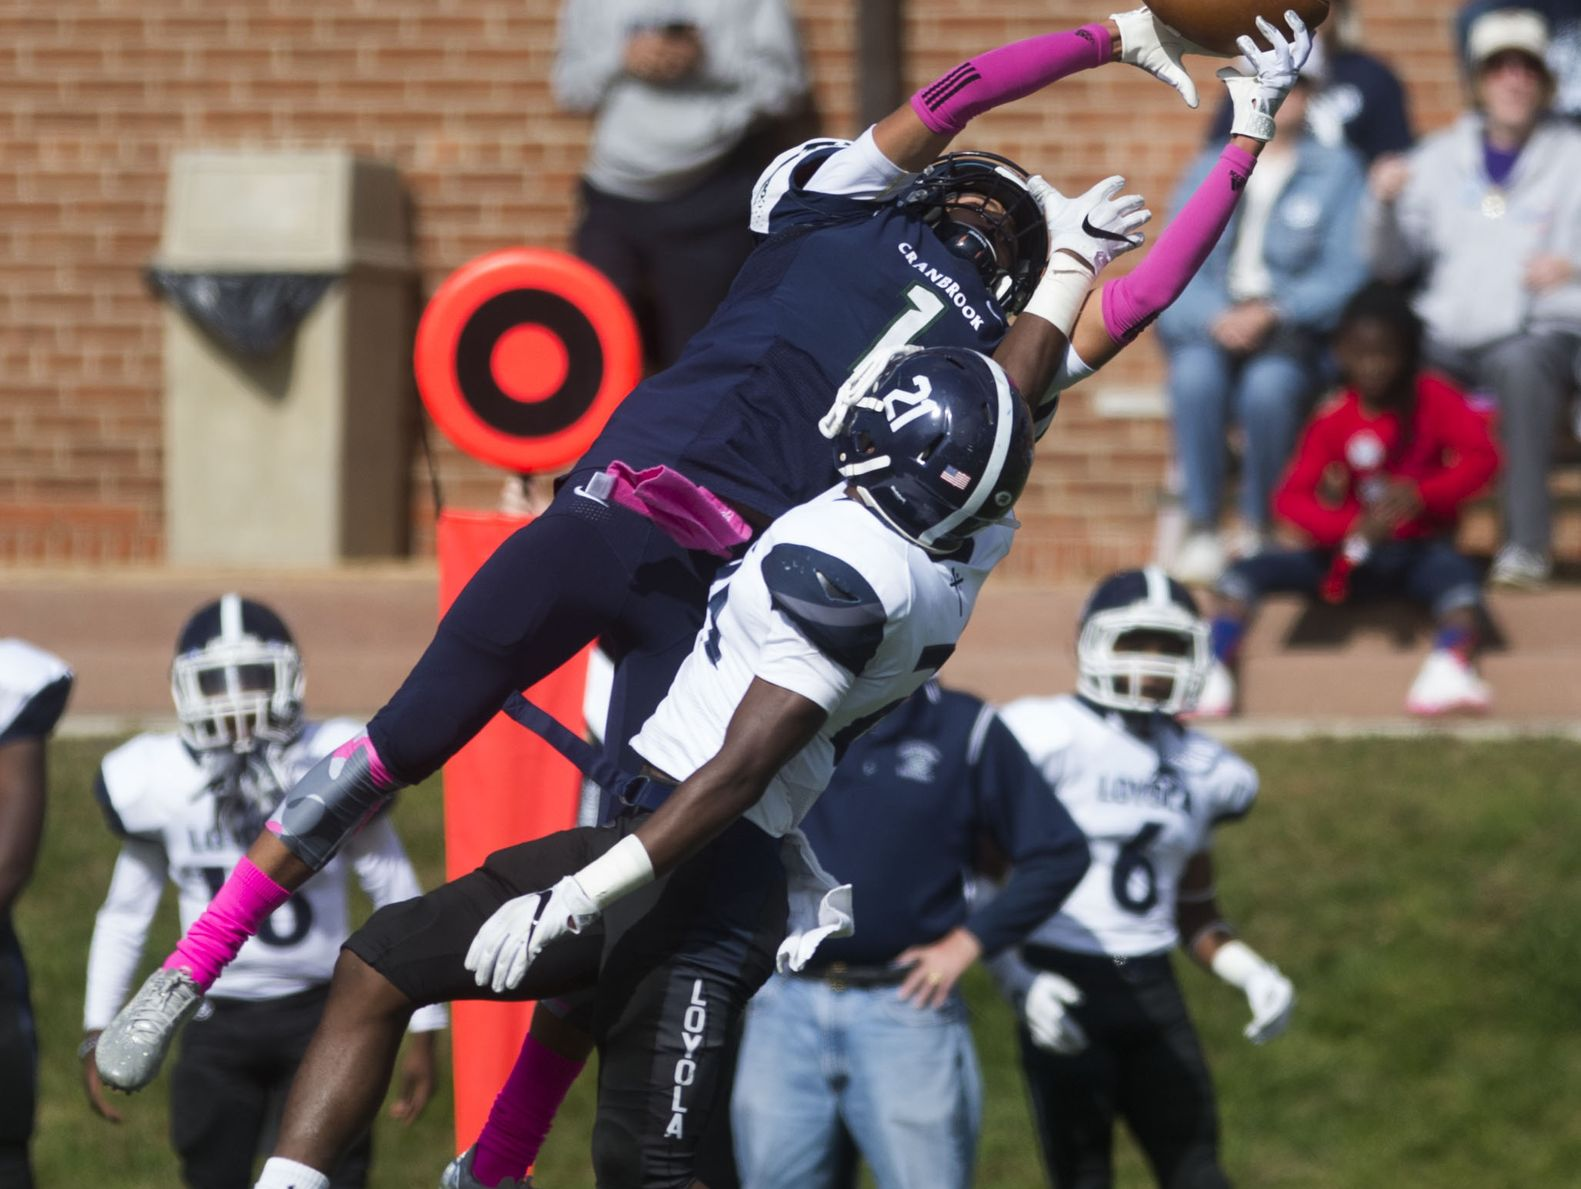 Bloomfield Hills Cranbrook player Kobi Russell (1) goes up for a catch against Detroit Loyola's Curtis Martin (21) during Loyola's 30-3 win over Cranbrook on Saturday in Bloomfield Hills.